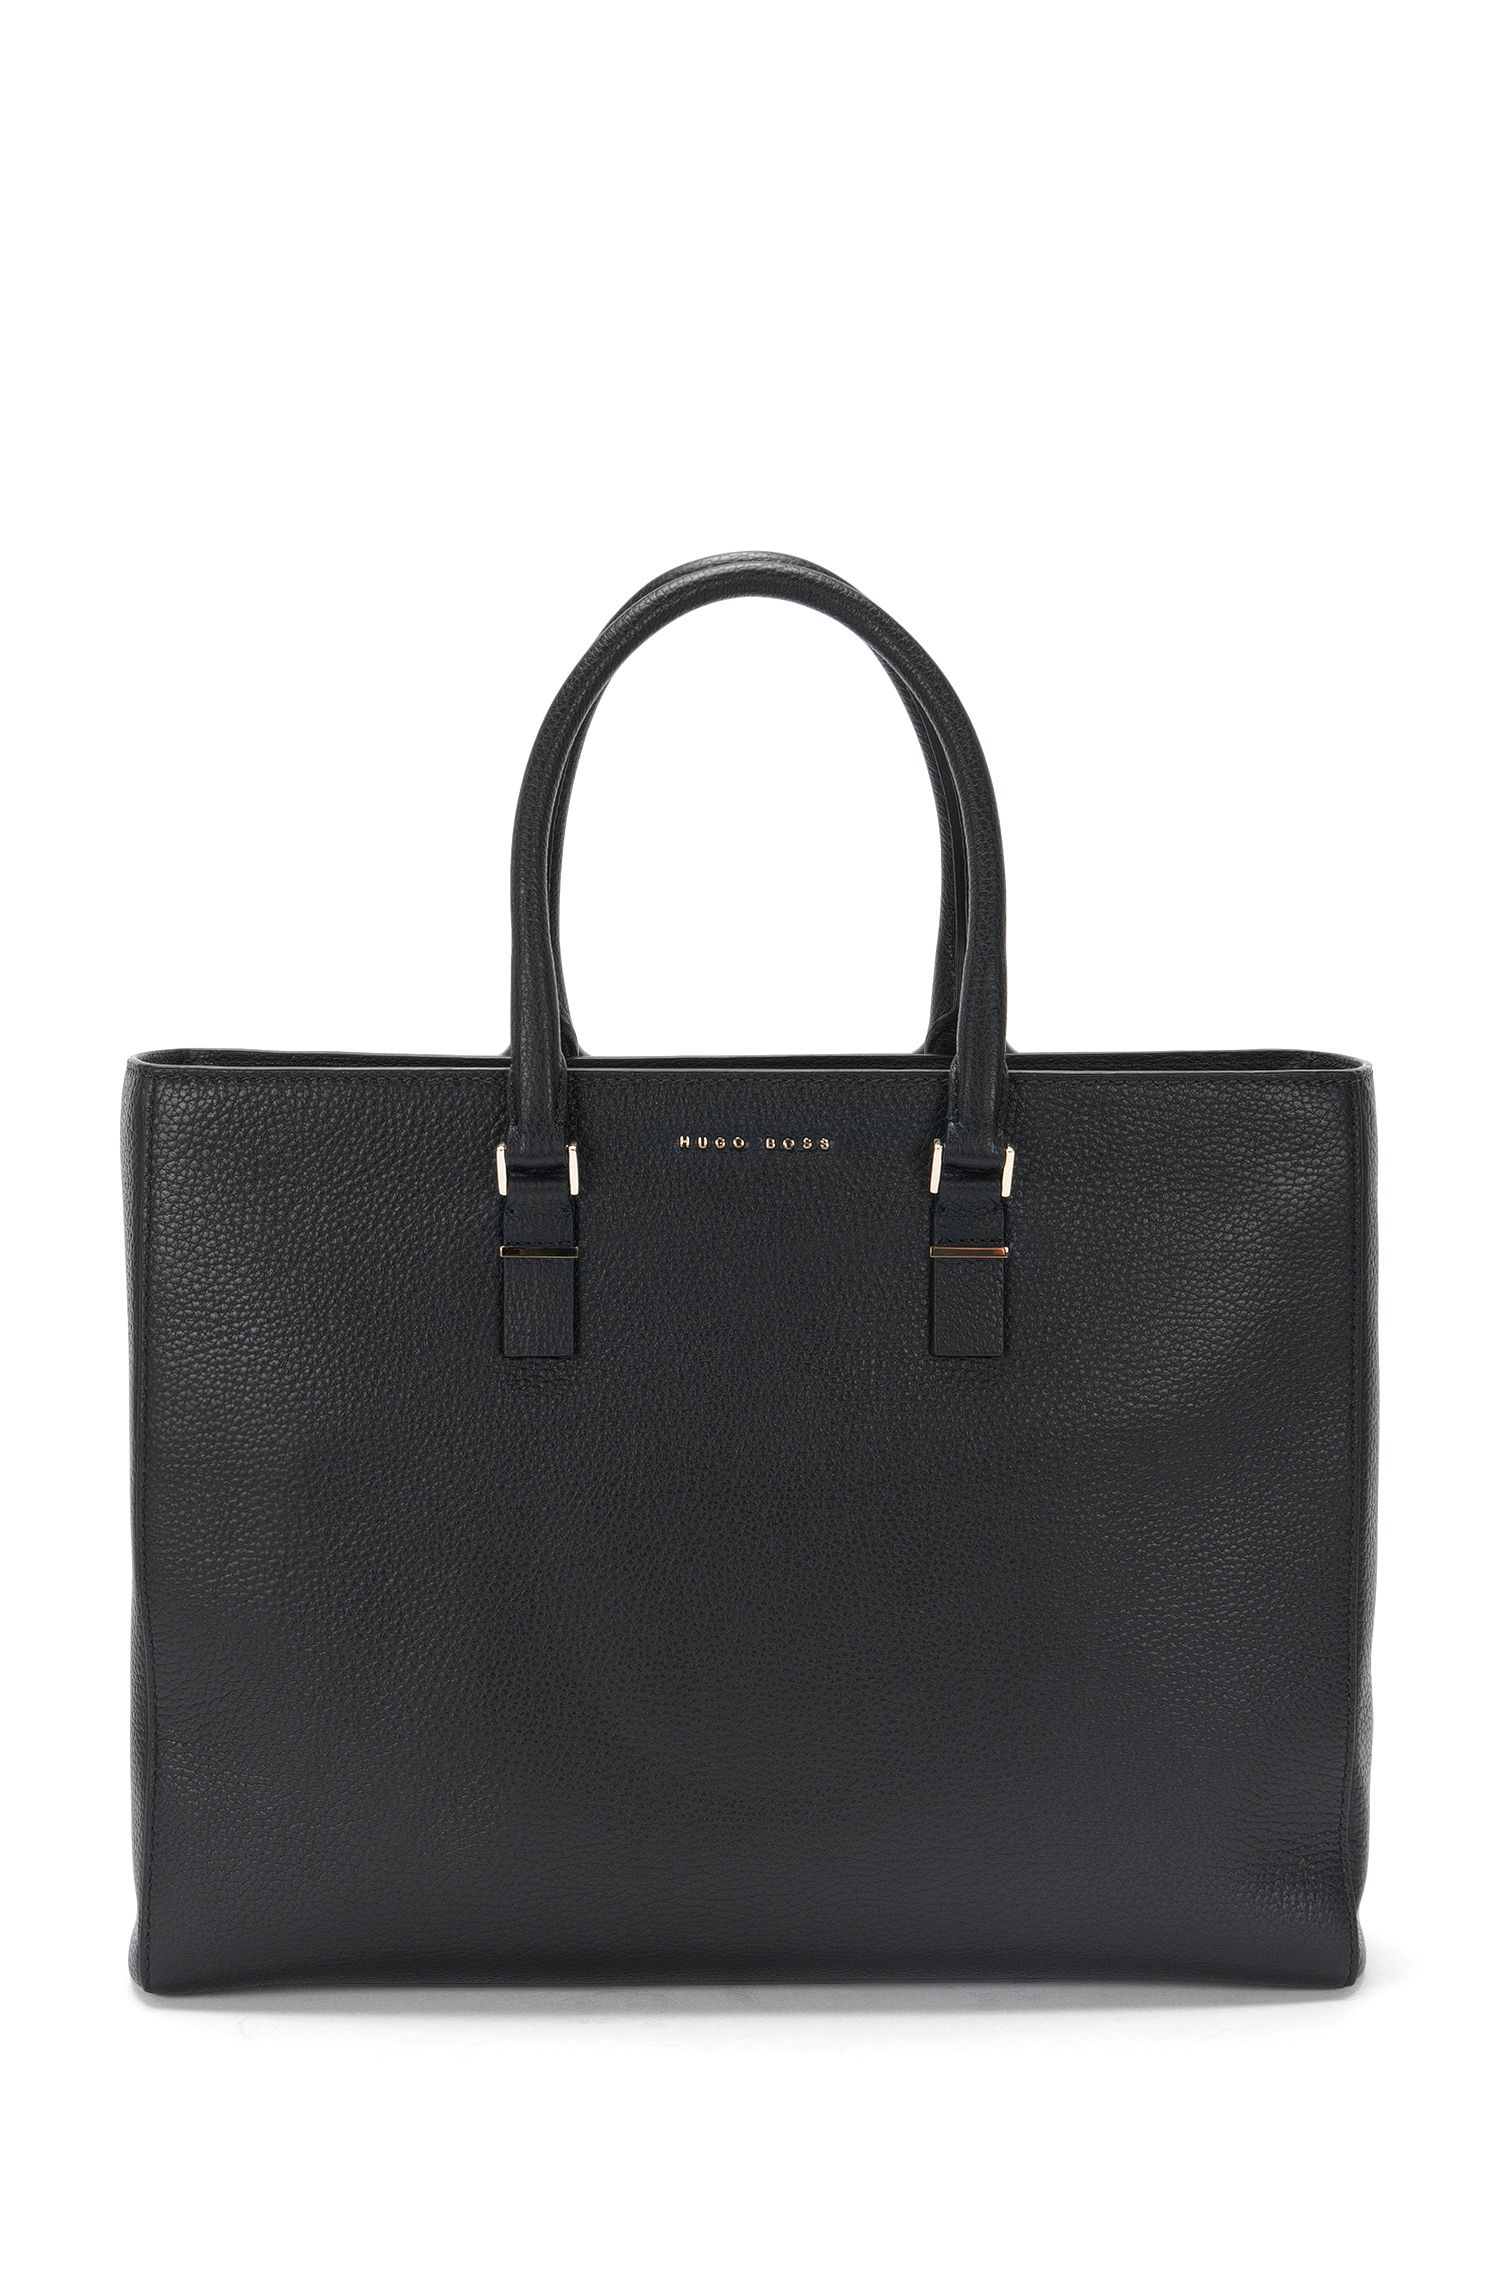 Luxury Staple work bag in rich Italian leather